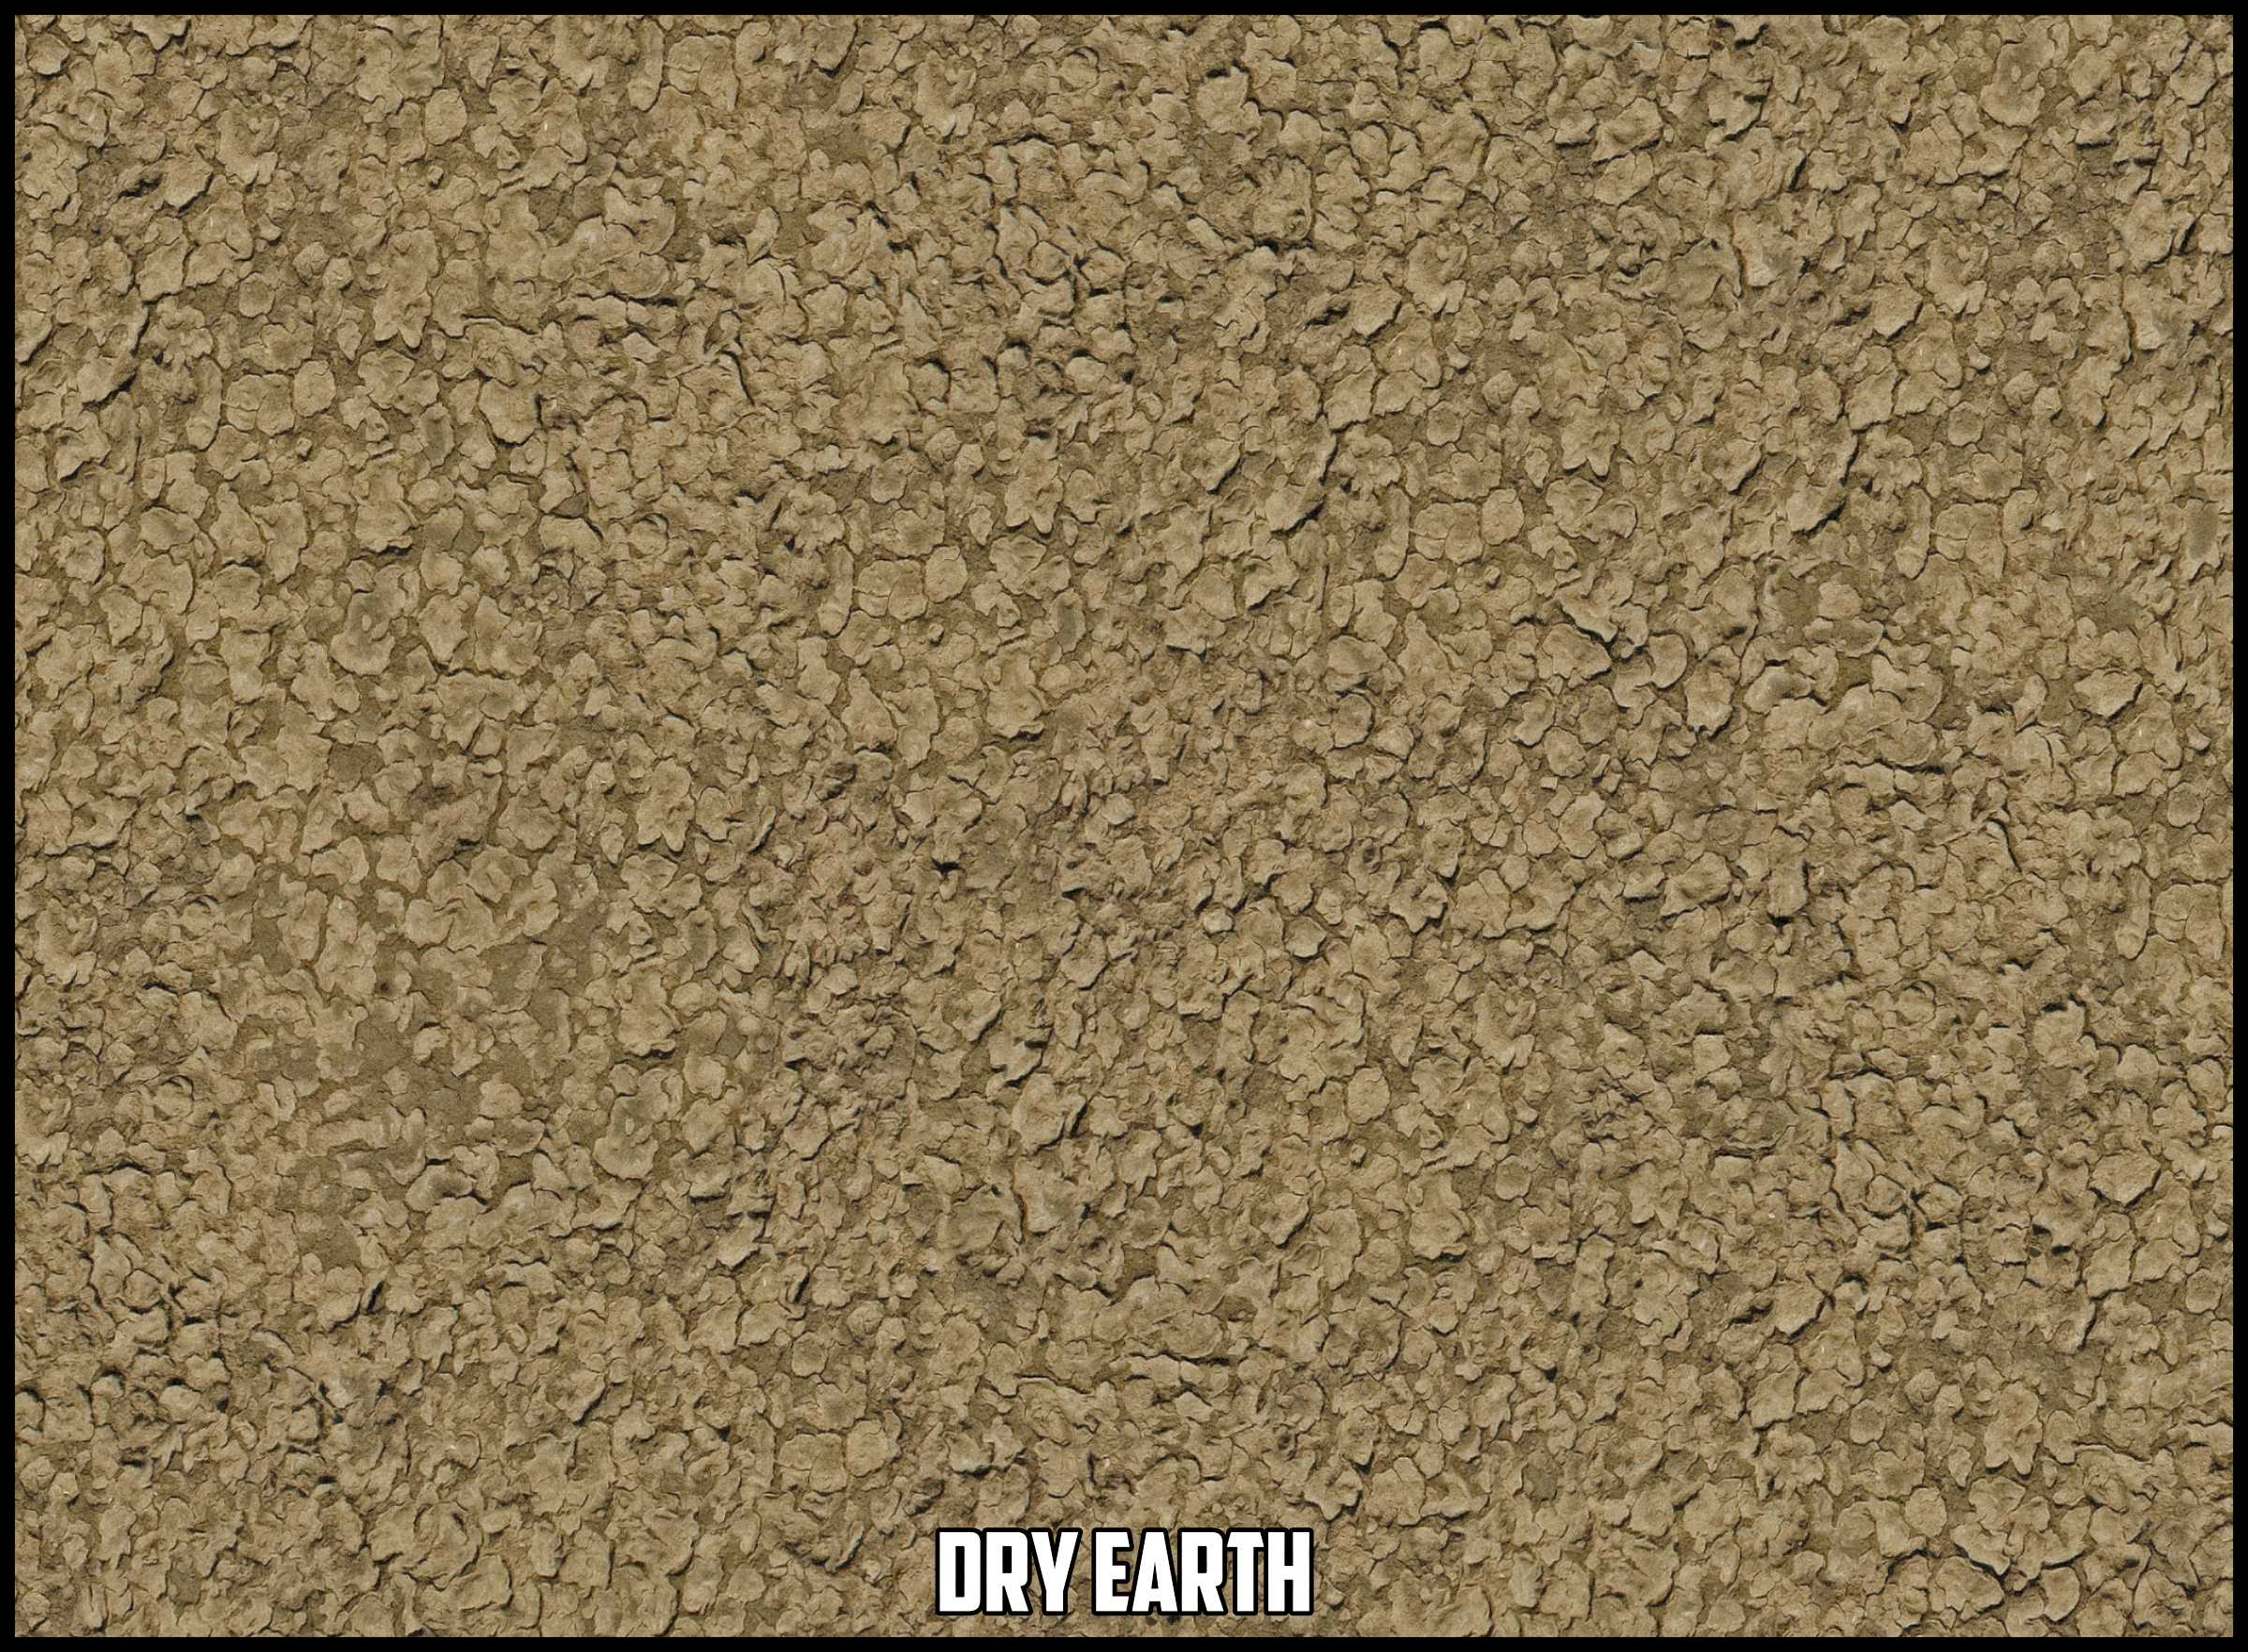 texture-dry-earth-example.png